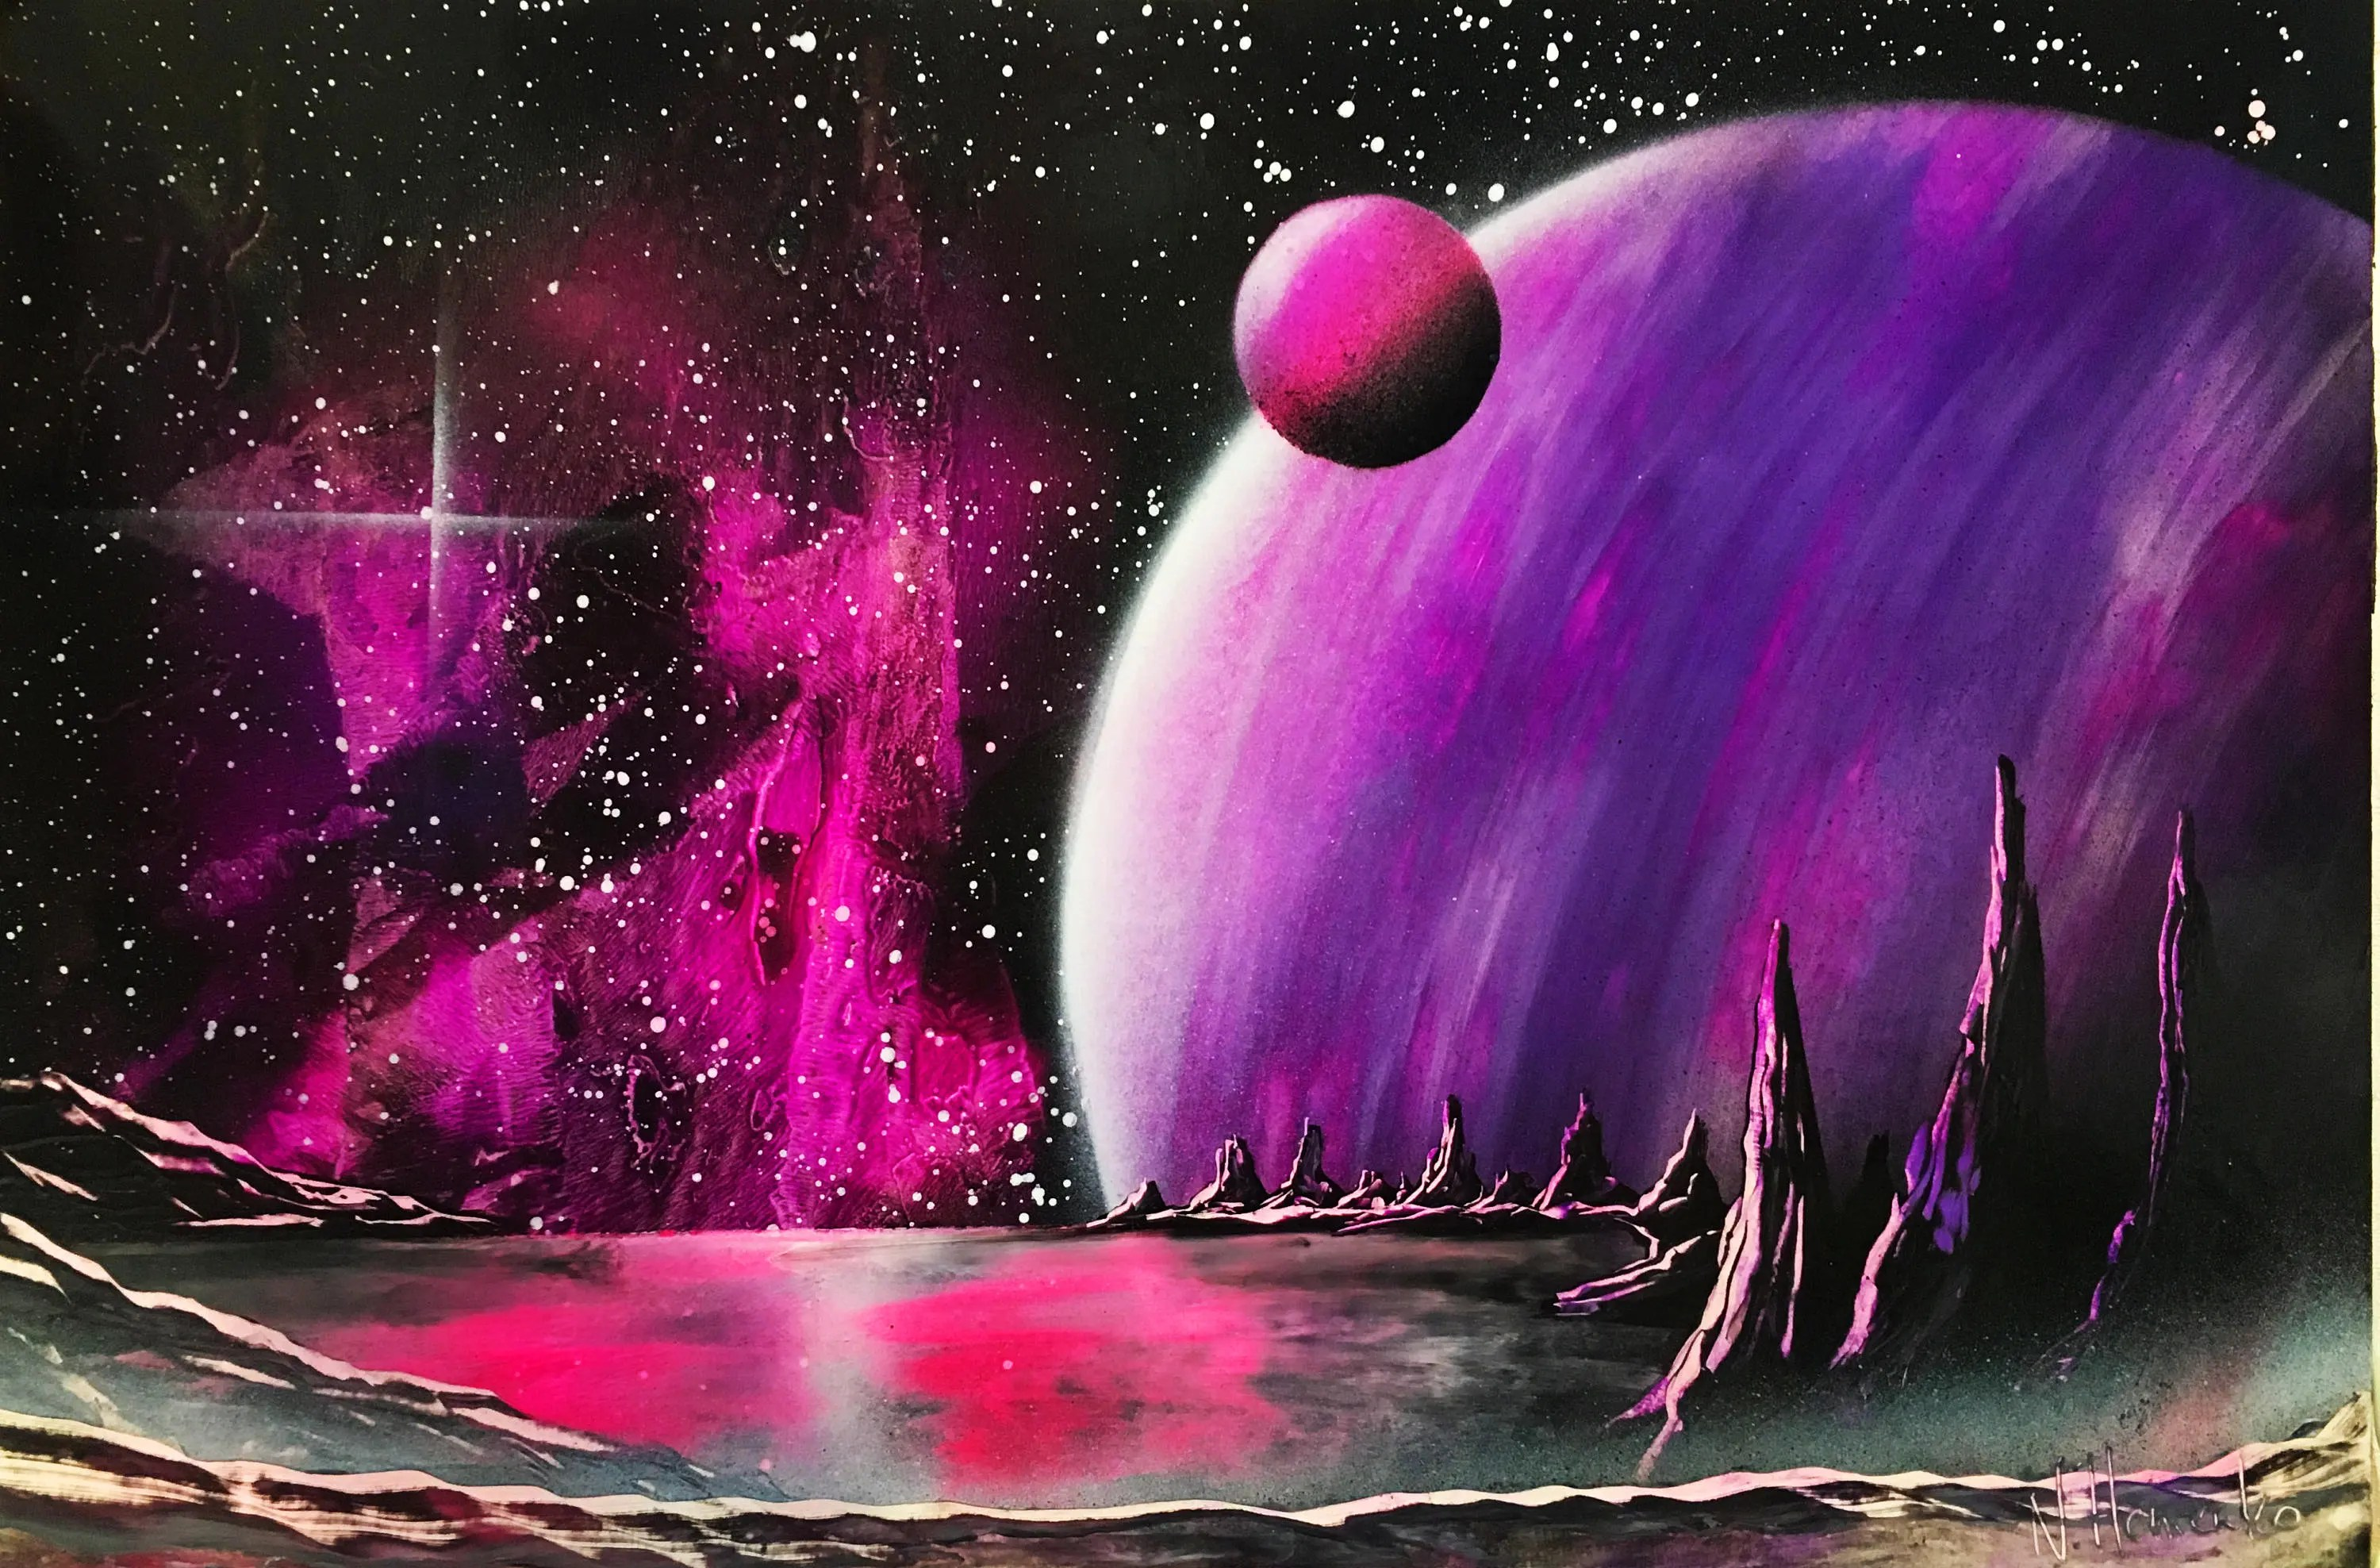 Spray Paint Art Space Painting Giant Planets Nebula Bright